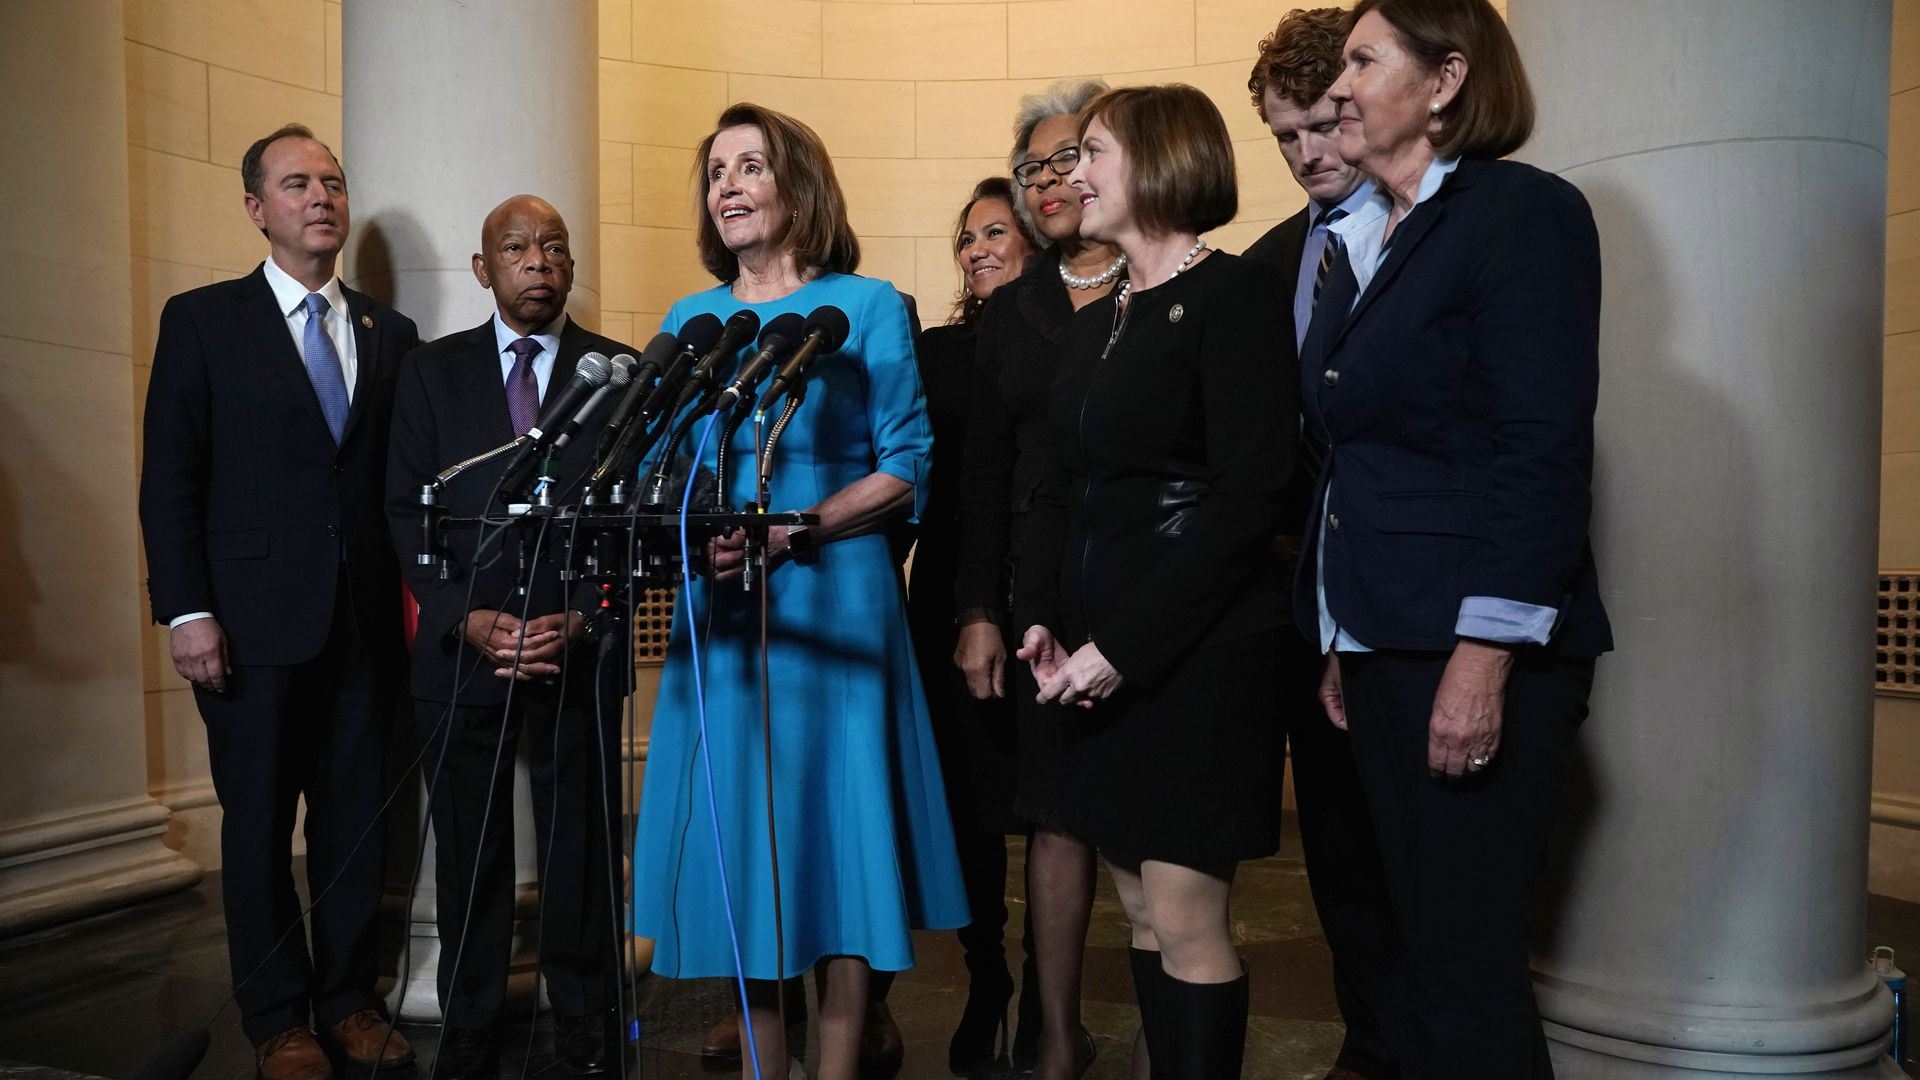 Nancy Pelosi stands with other Democrats at a press conference.